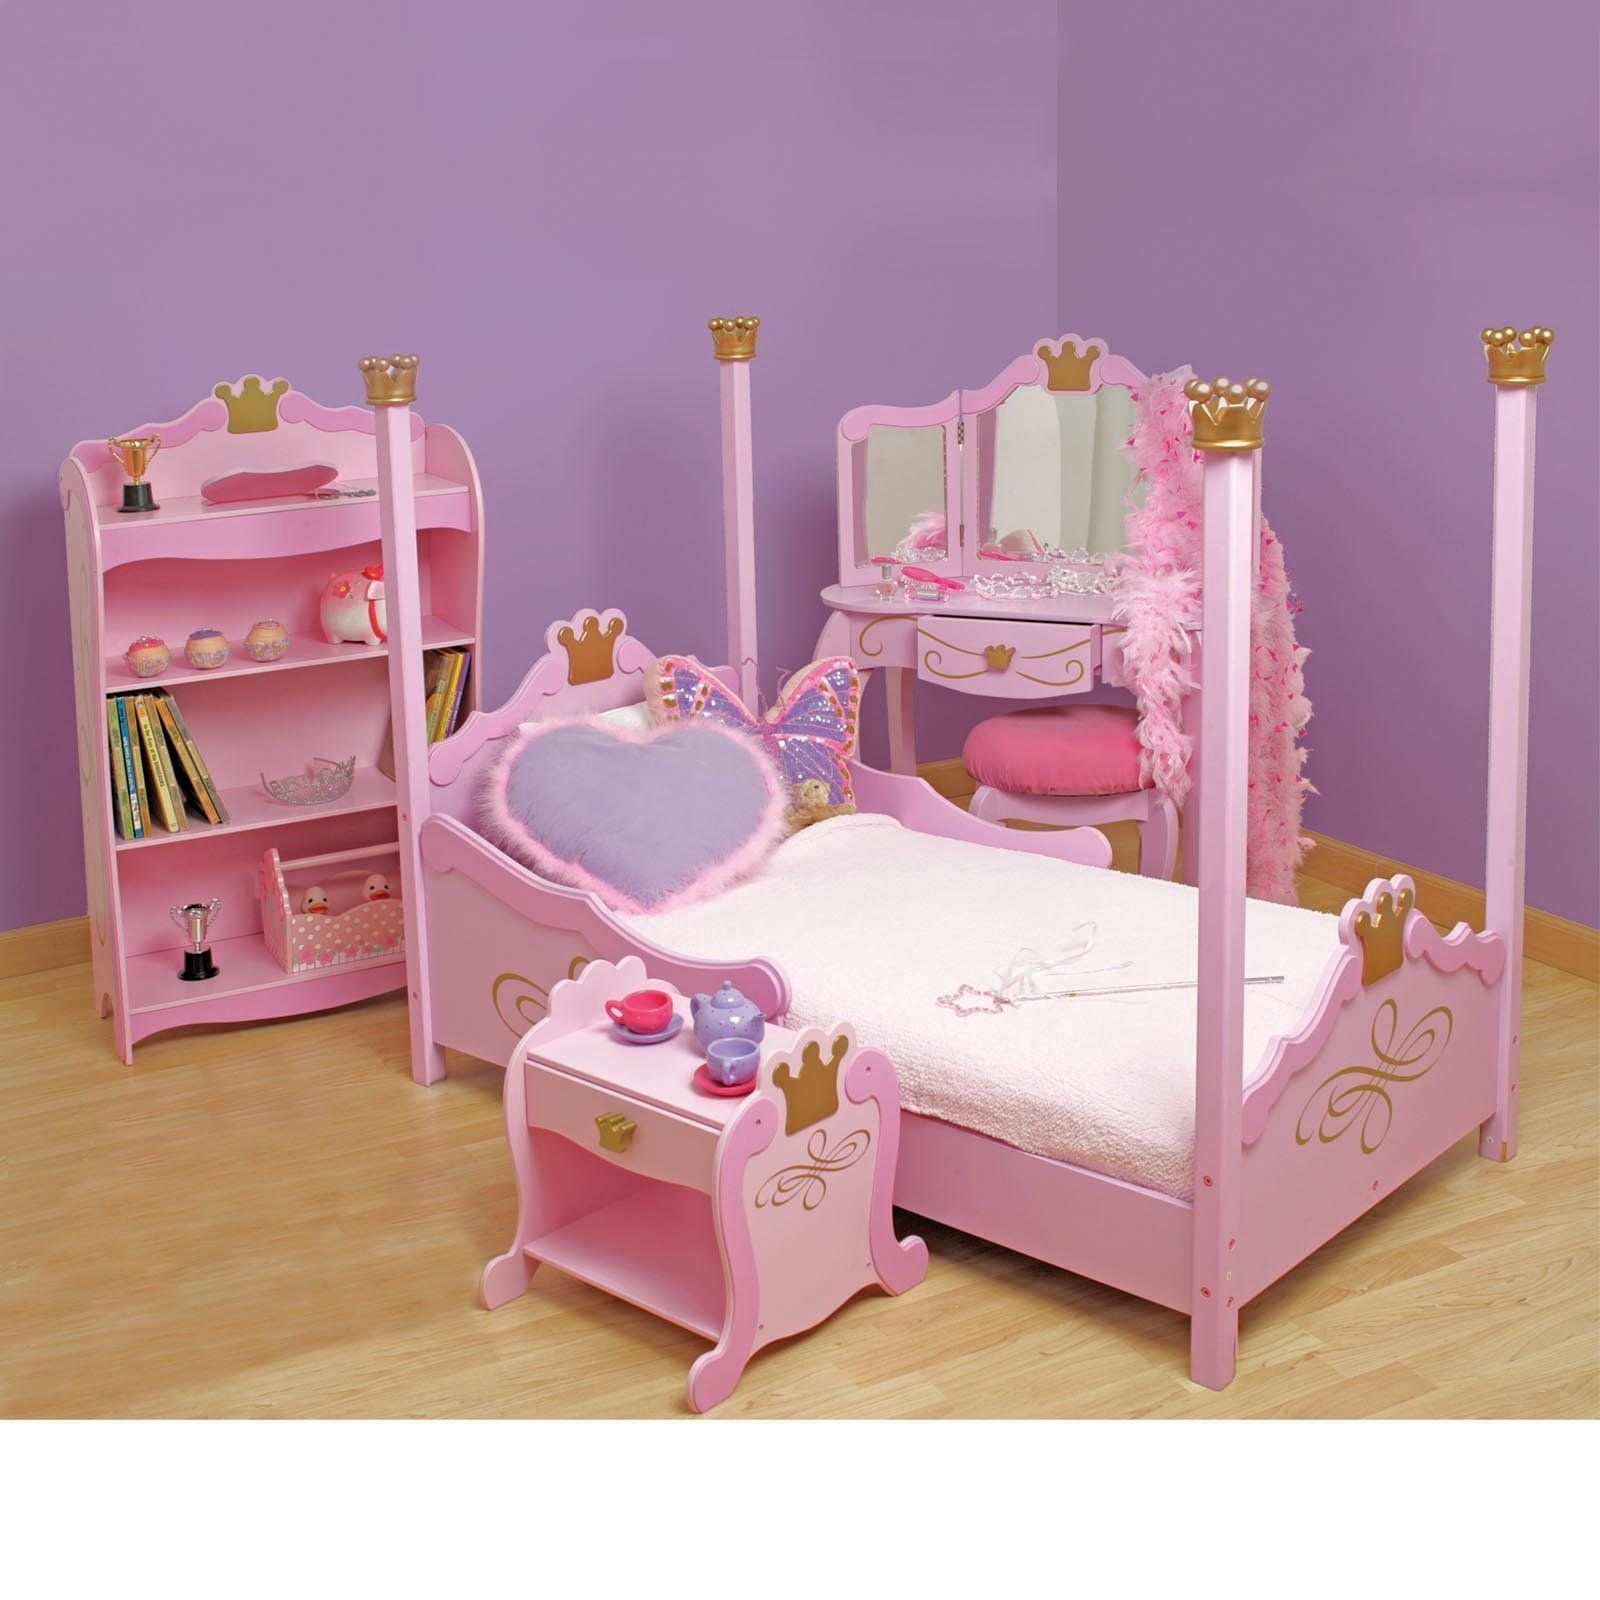 Best Cute Toddler Beds For Girls Http Decor Aitherslight With Pictures